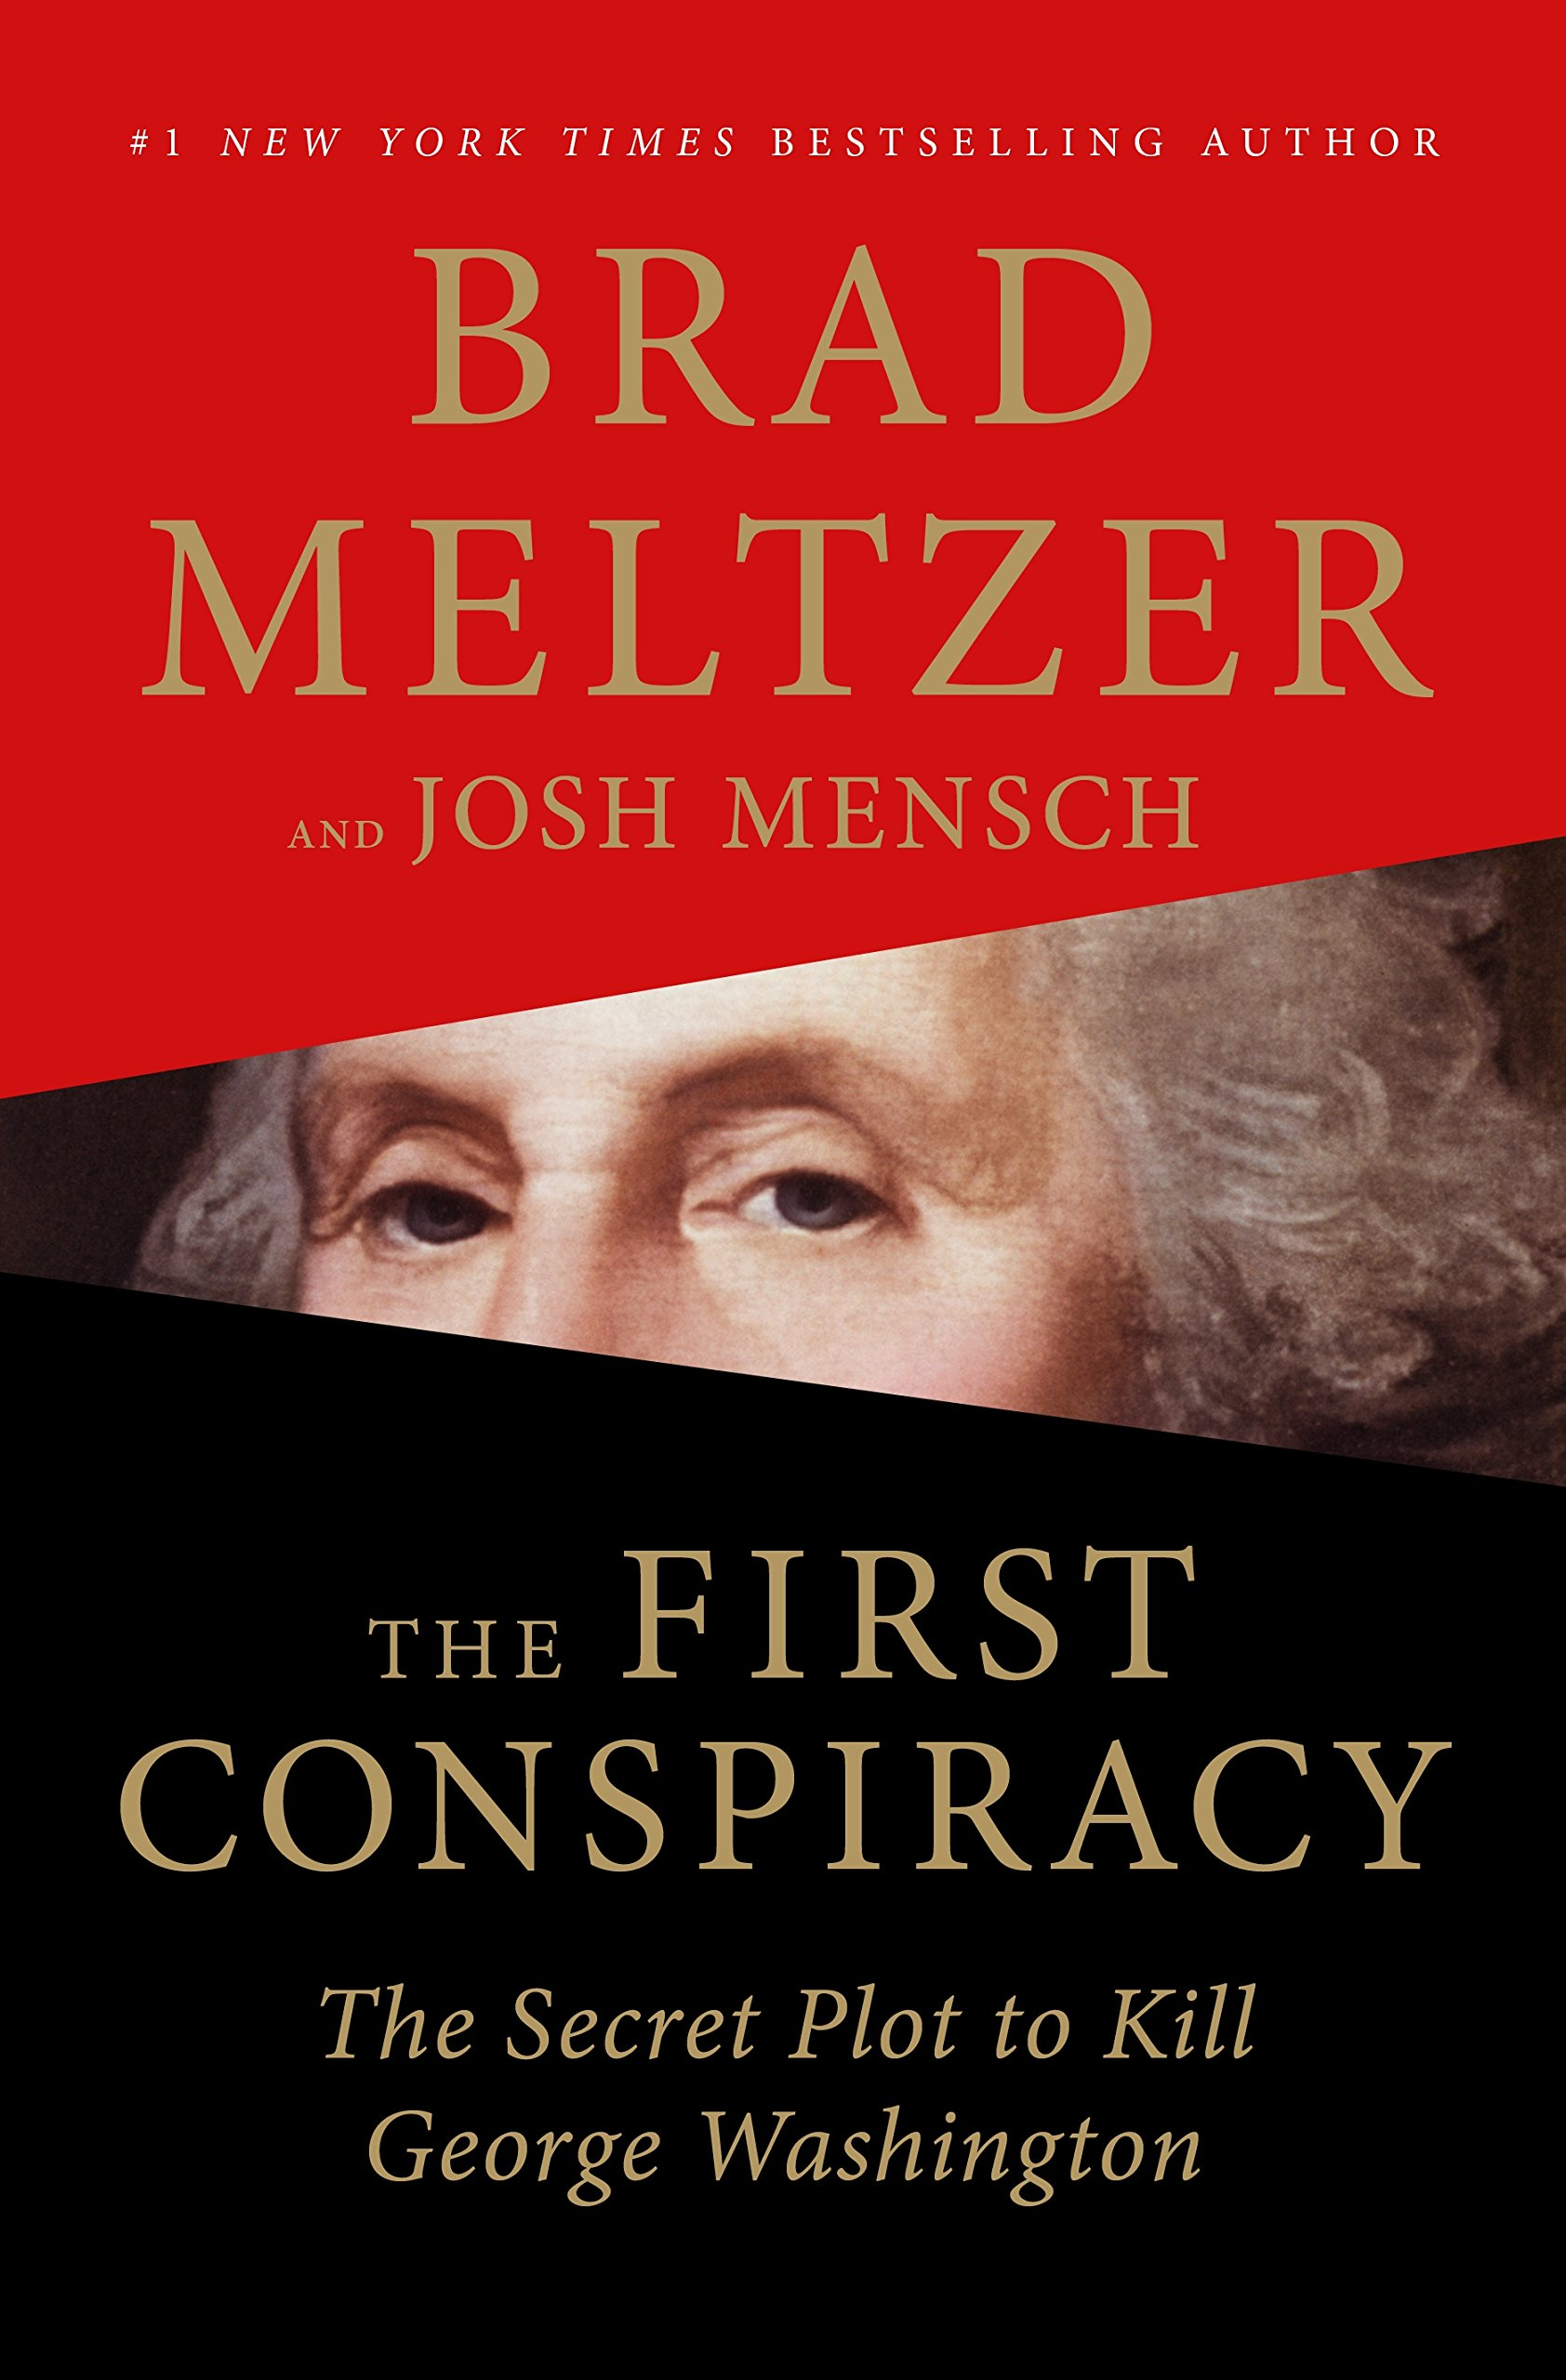 Image result for The First Conspiracy: The Secret Plot to Kill George Washington by Brad Meltzer and Josh Mensch amazon